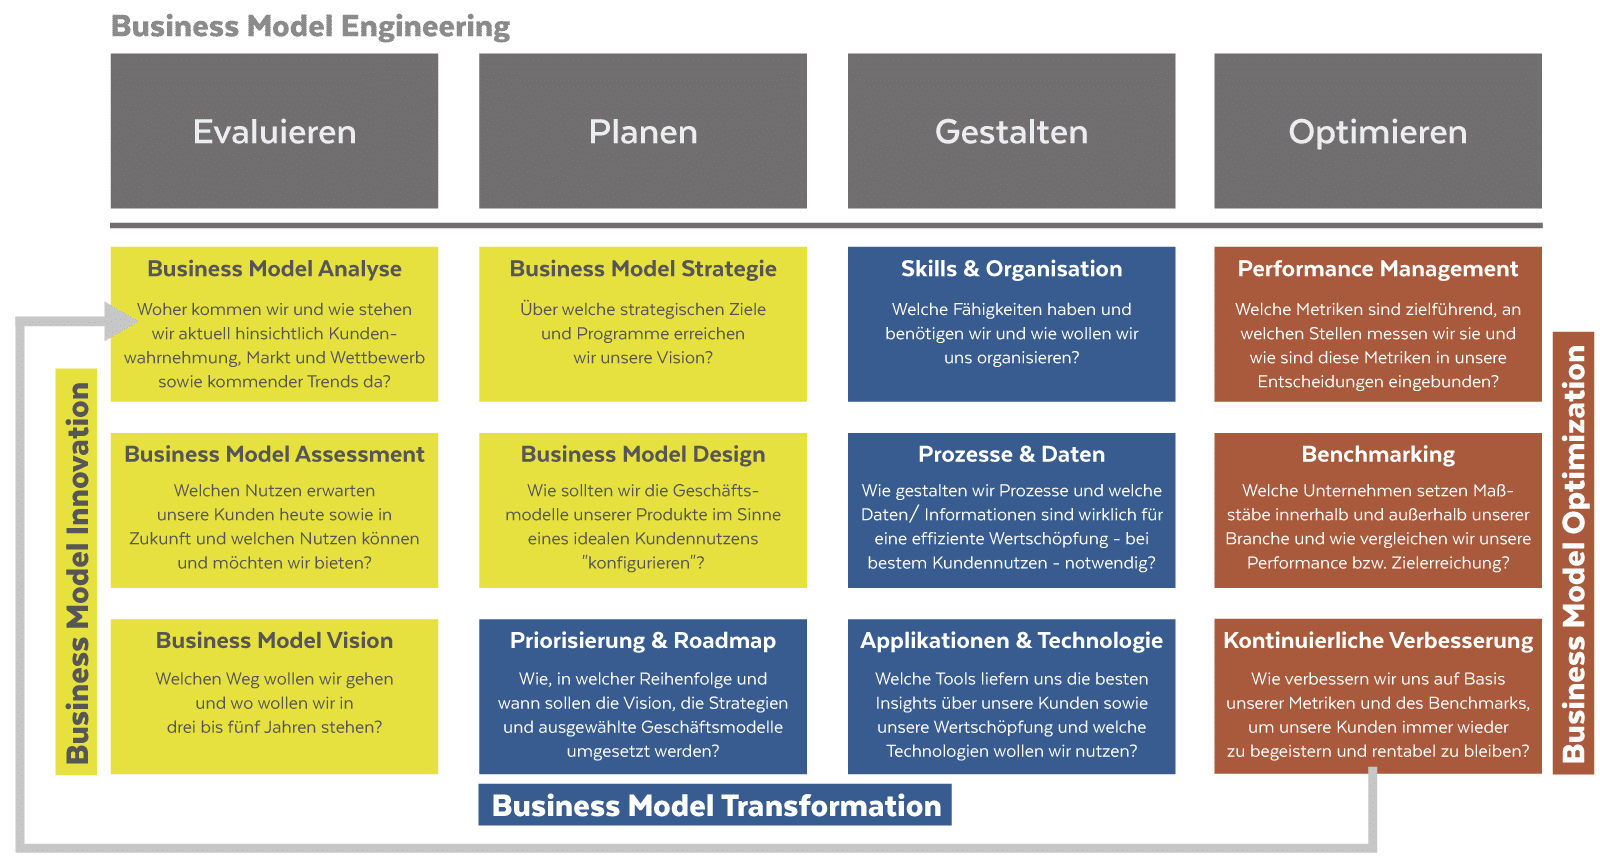 Business Model Innovation Transformation Optimization